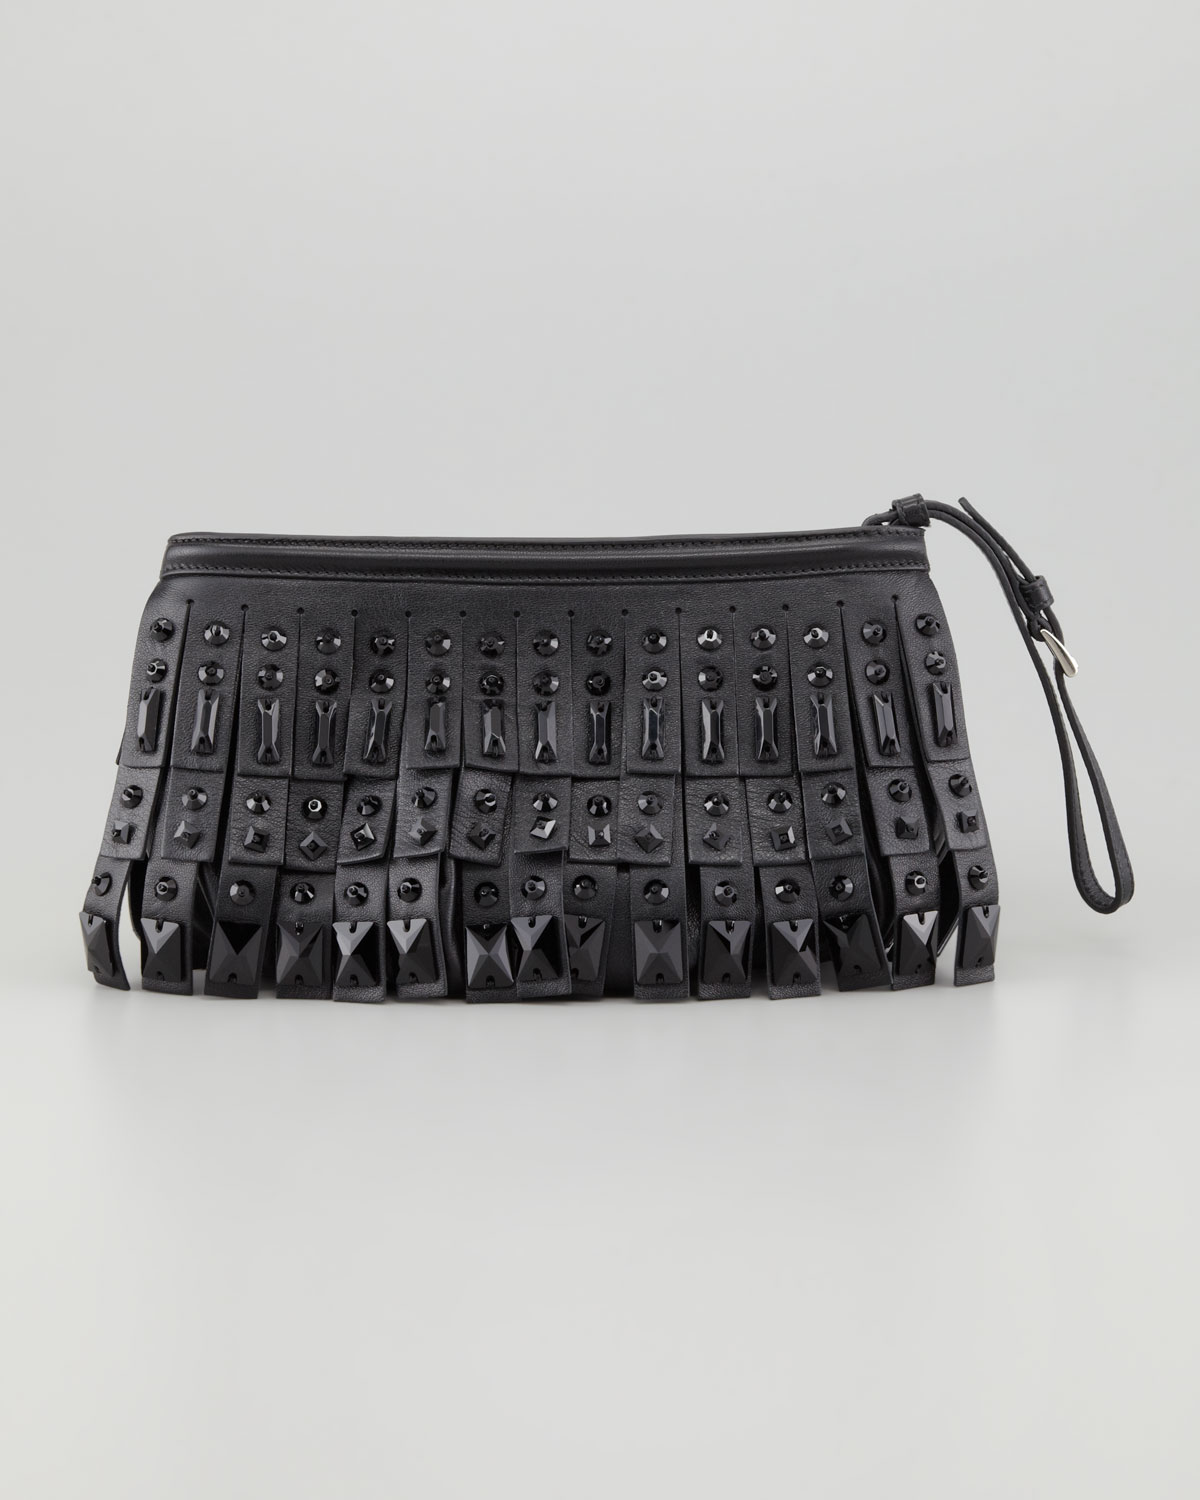 prada grey leather bag - prada bag with fringe